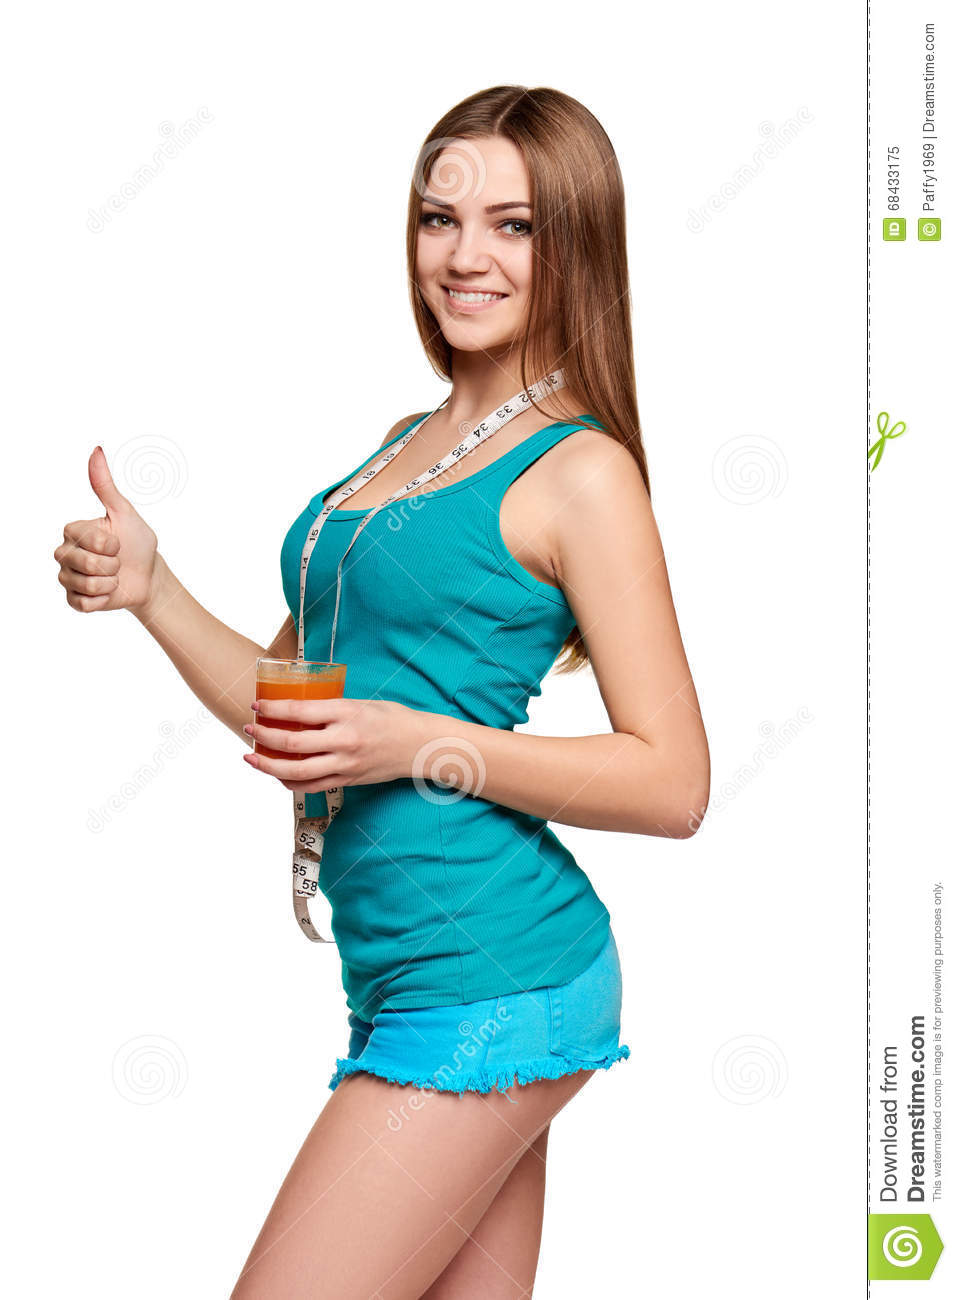 Happy girl holding a glass of carrot juice, with measurement tape over her  neck gesturing thumb up, over white background